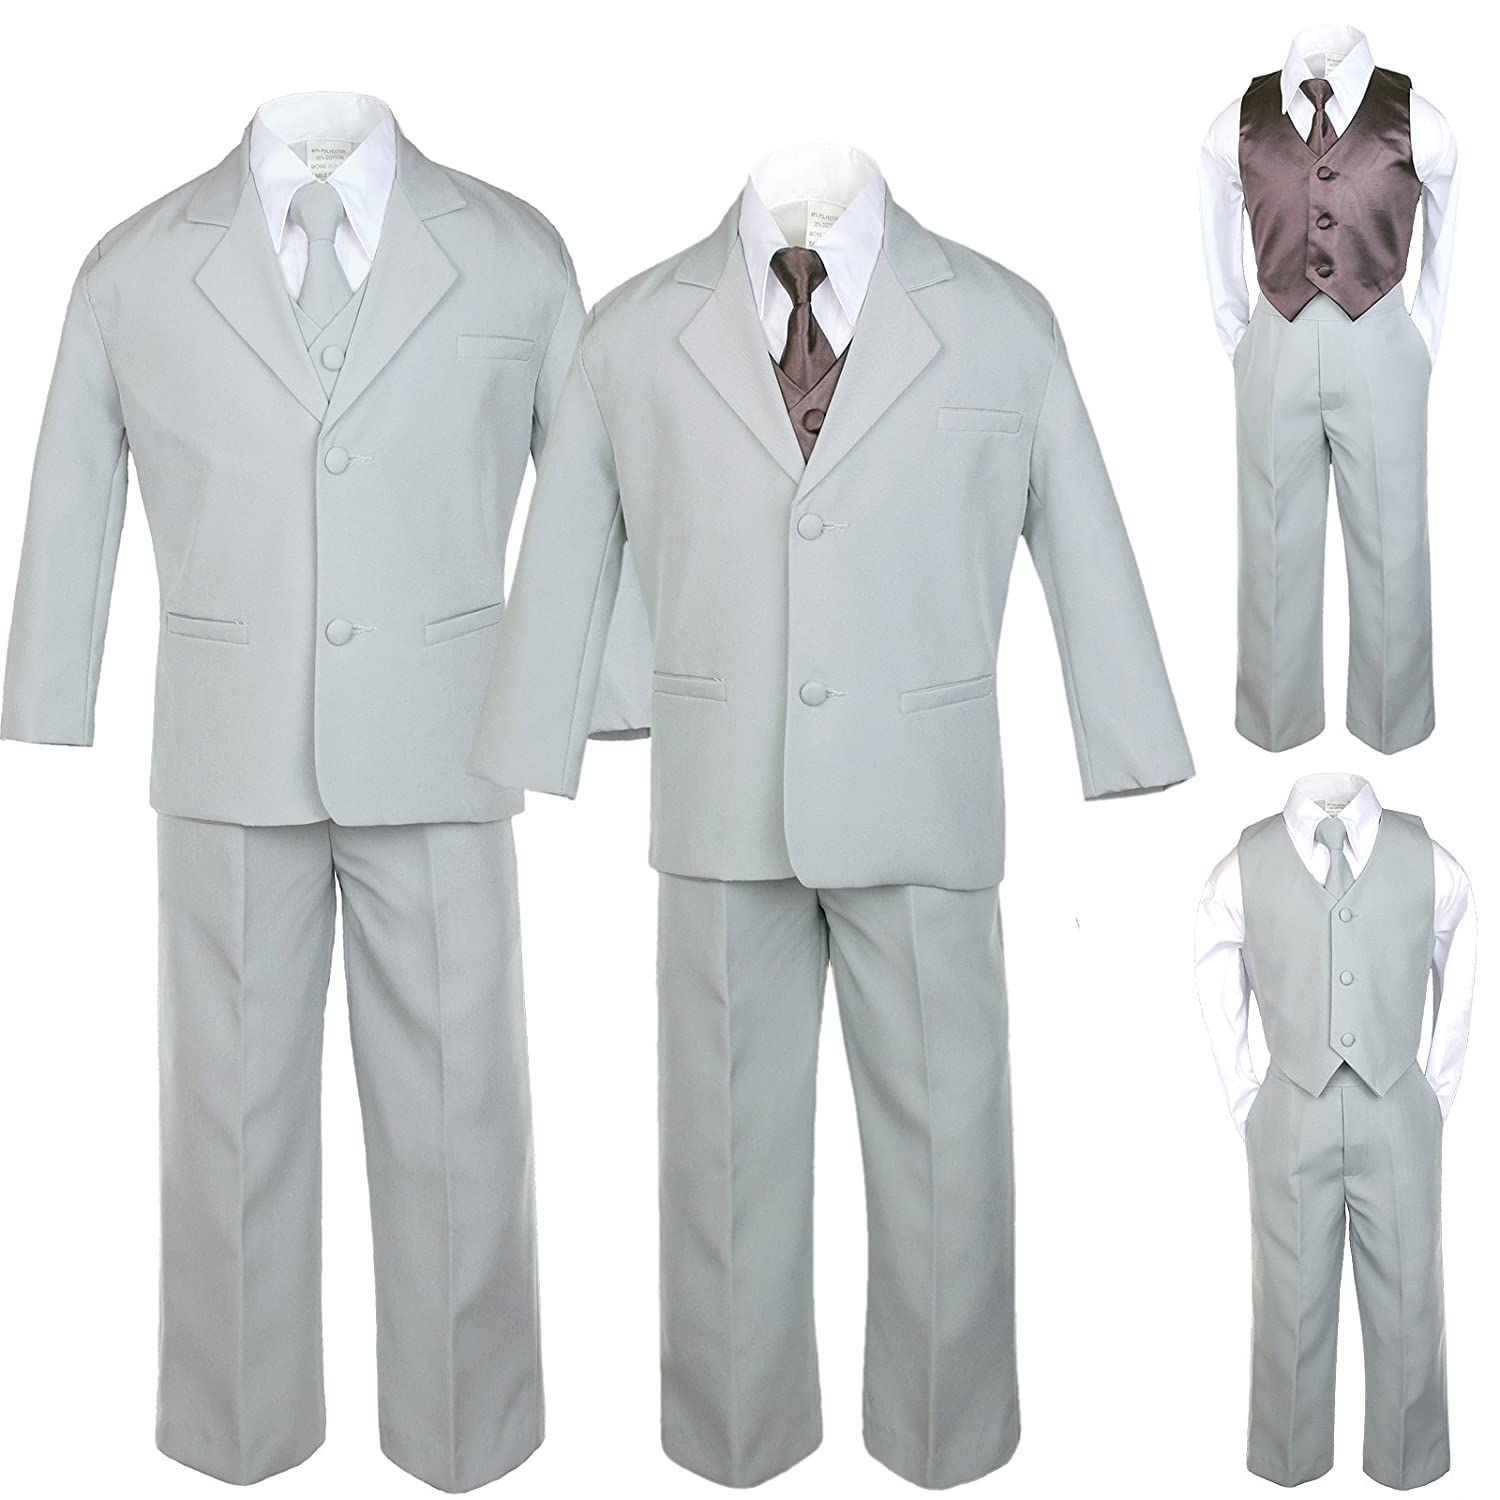 7pc Boys Silver Suit with Satin Brown Vest Set from Baby to Teen (18)